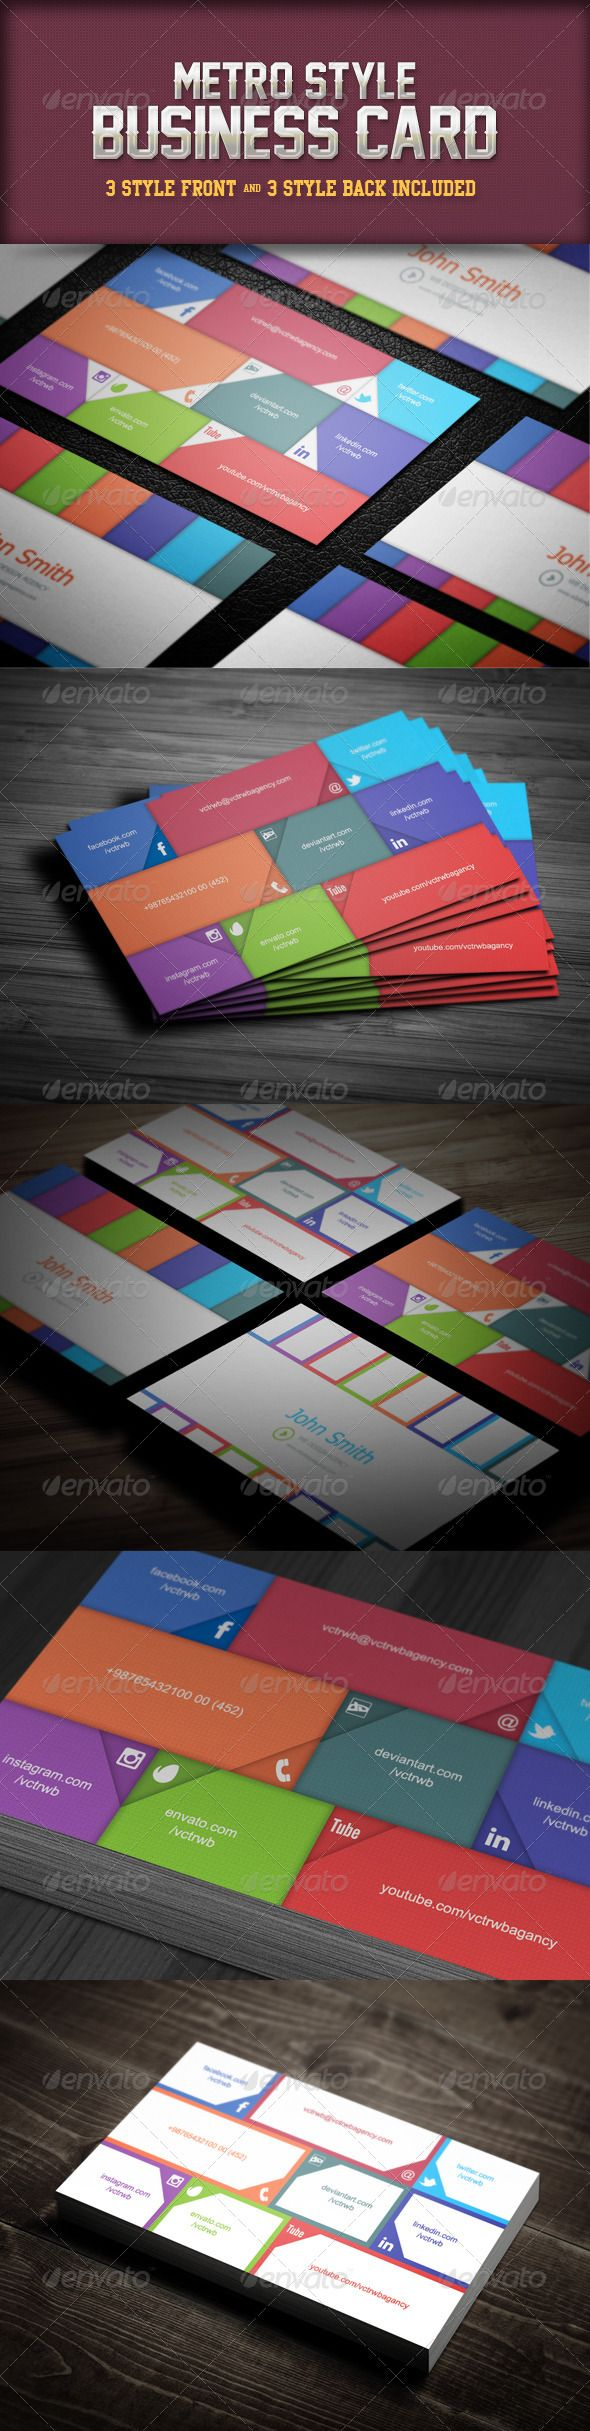 32 best jewelry business card images on pinterest card designs metro style business cards magicingreecefo Images